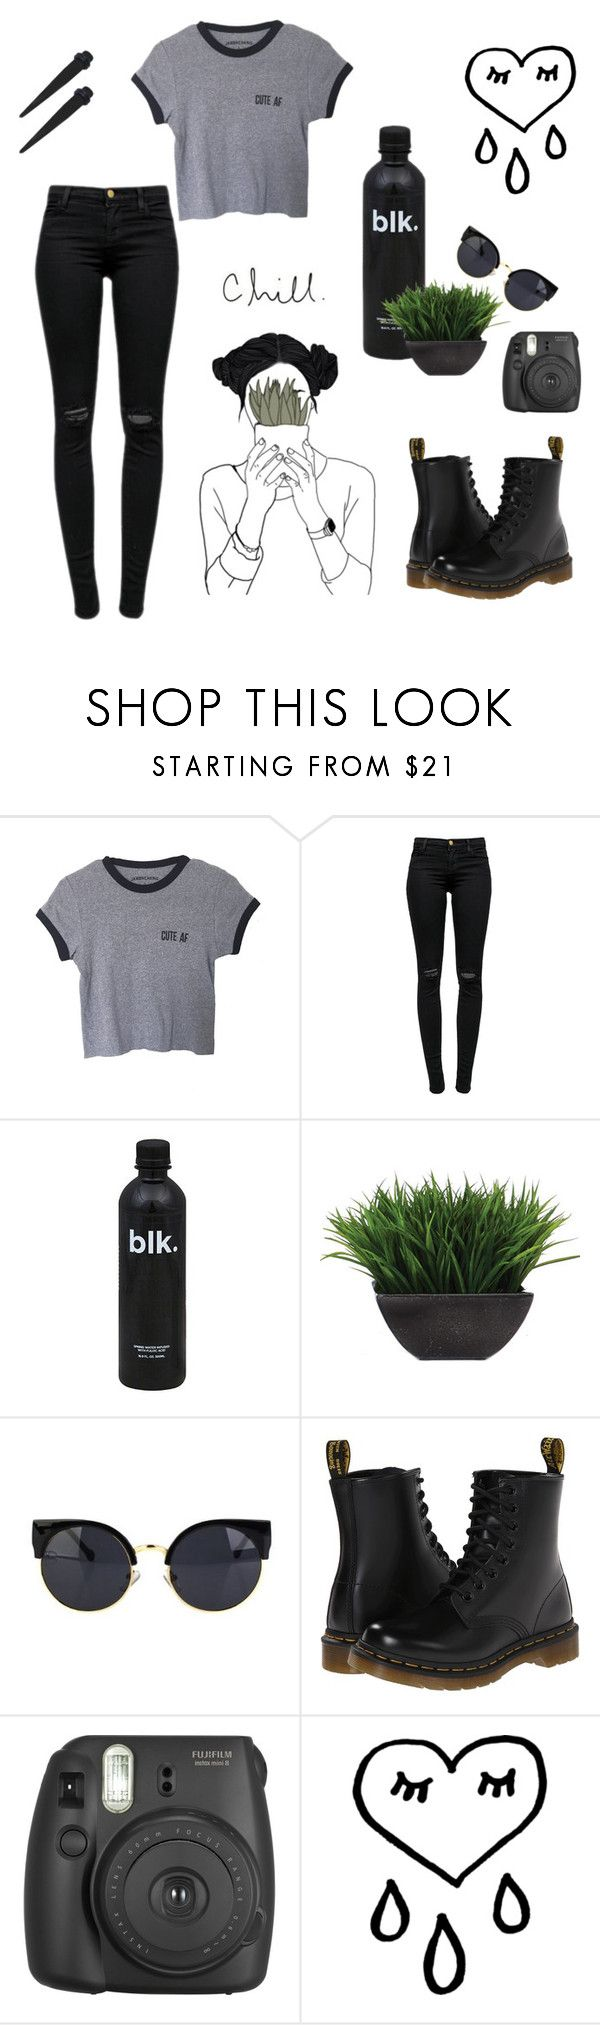 """""""Untitled #113"""" by amazingxemma ❤ liked on Polyvore featuring J Brand, Lux-Art Silks, Dr. Martens, Fujifilm, grunge, bands, relax and alternative"""